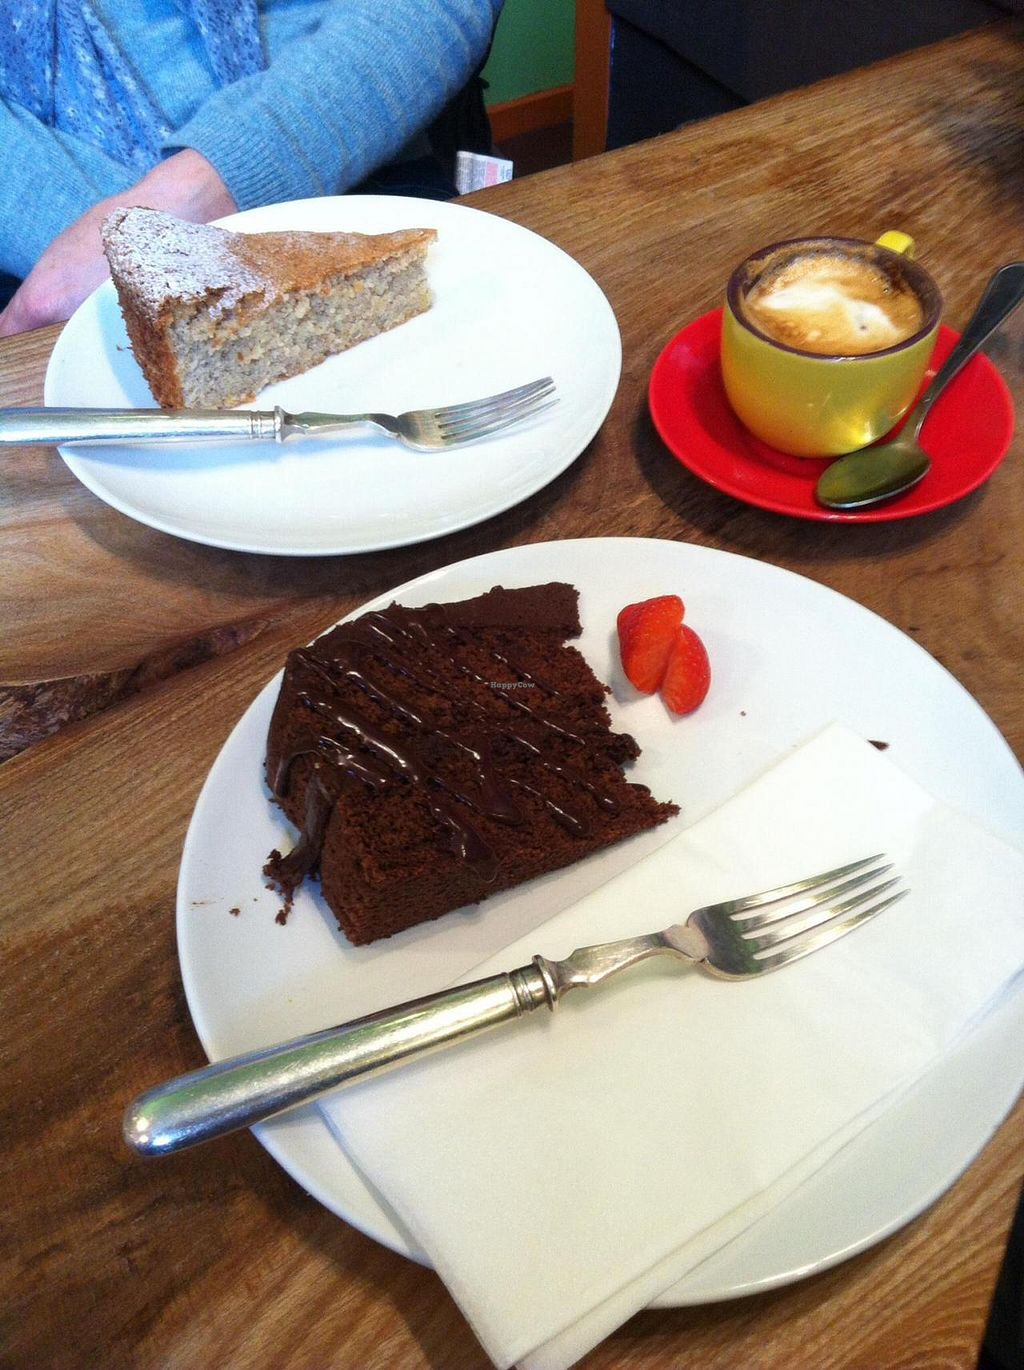 """Photo of CLOSED: The Artisan Lounge  by <a href=""""/members/profile/casualdot"""">casualdot</a> <br/>Almond cake and vegan chocolate Turkish delight cake from the Artisan Lounge <br/> November 20, 2014  - <a href='/contact/abuse/image/52170/86105'>Report</a>"""